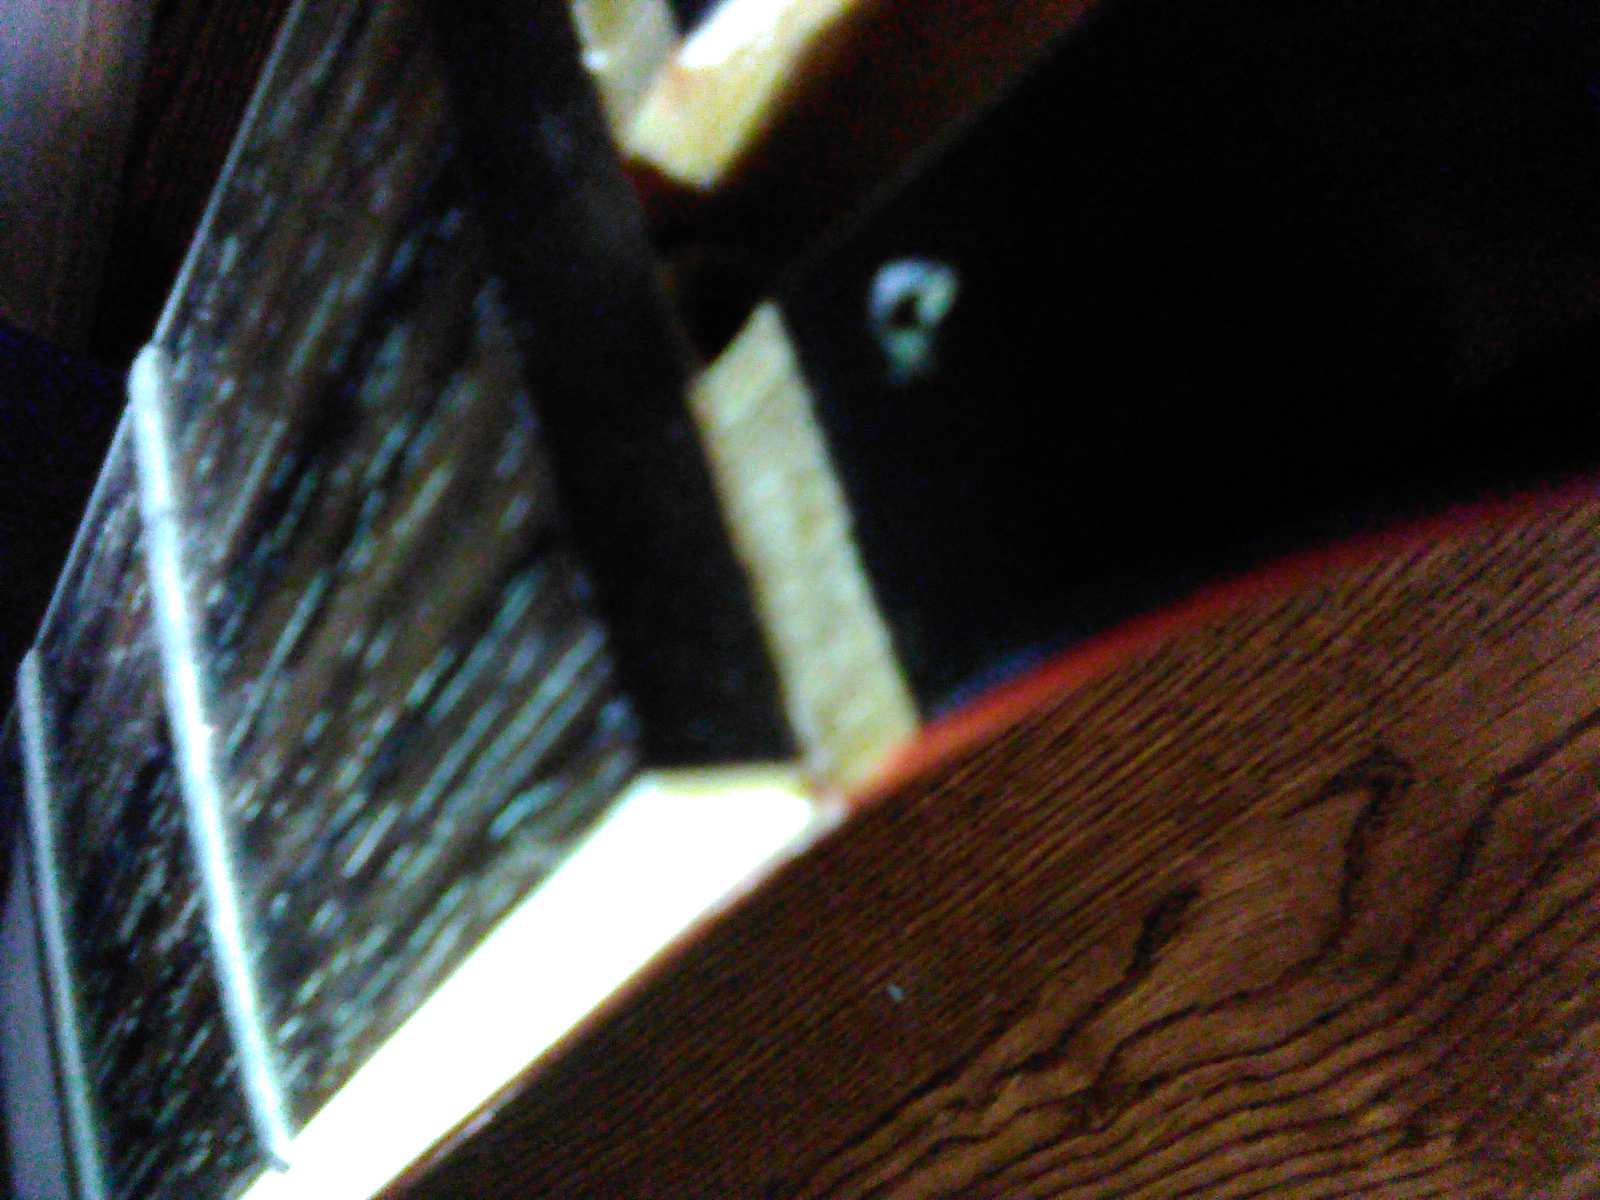 Respraying finish cracks in beater guitar-neck-6-jpg